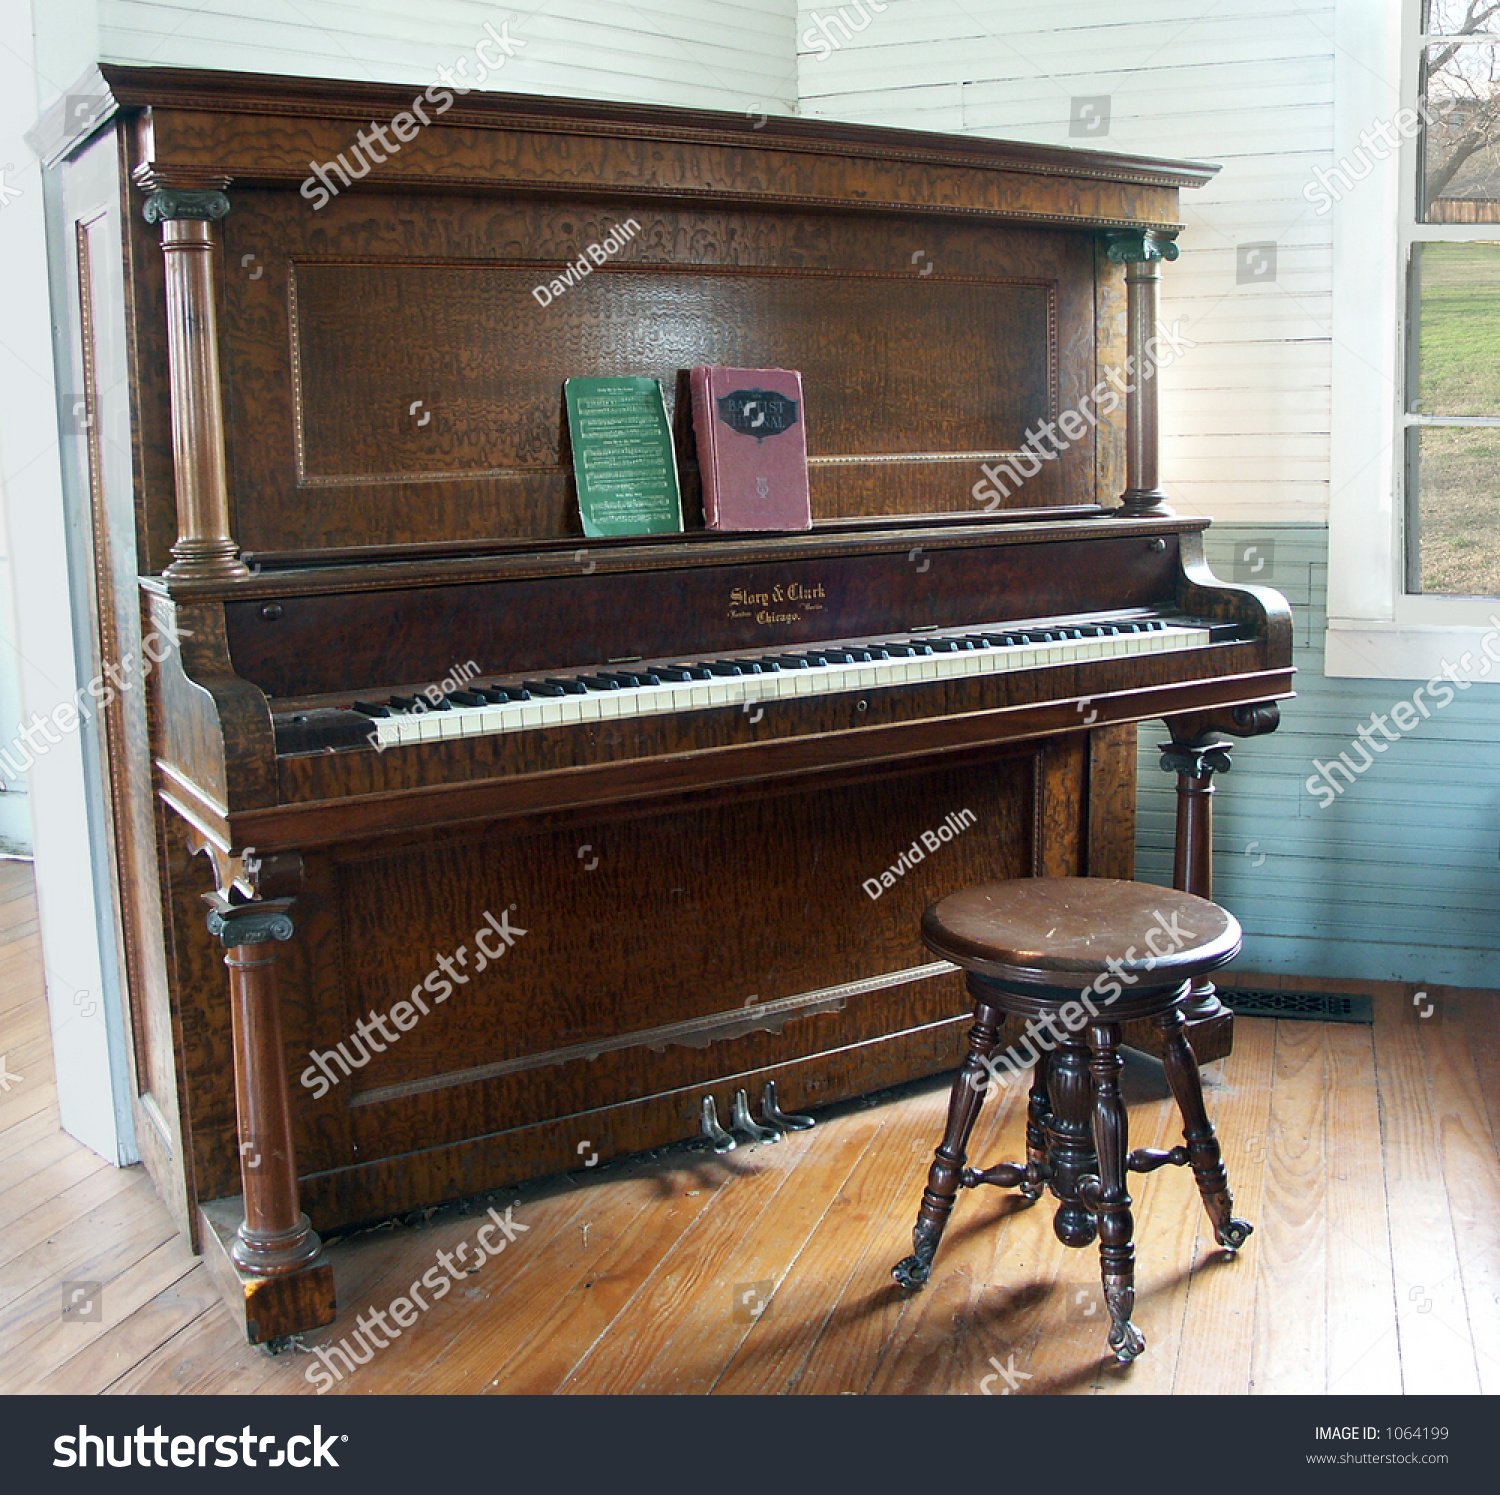 old piano country church stock photo 1064199 shutterstock. Black Bedroom Furniture Sets. Home Design Ideas